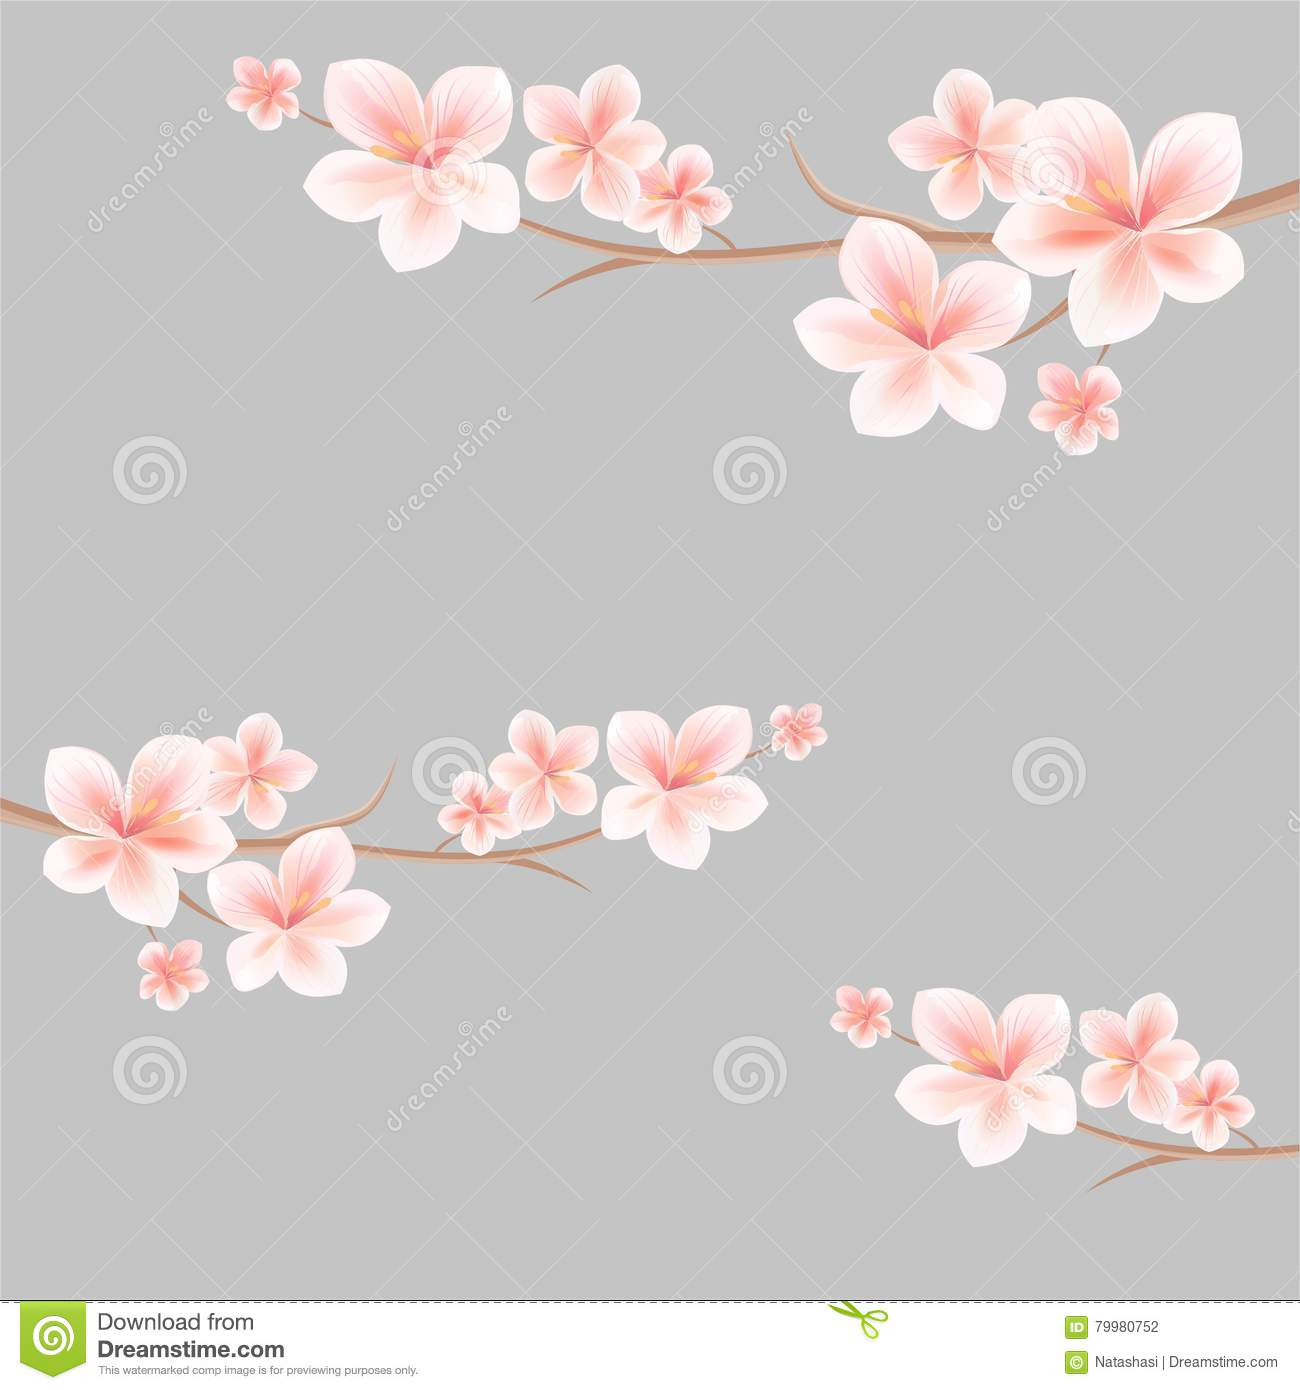 Branches of sakura with light Pink White flowers on light grey background. Apple-tree flowers. Cherry blossom. Vector